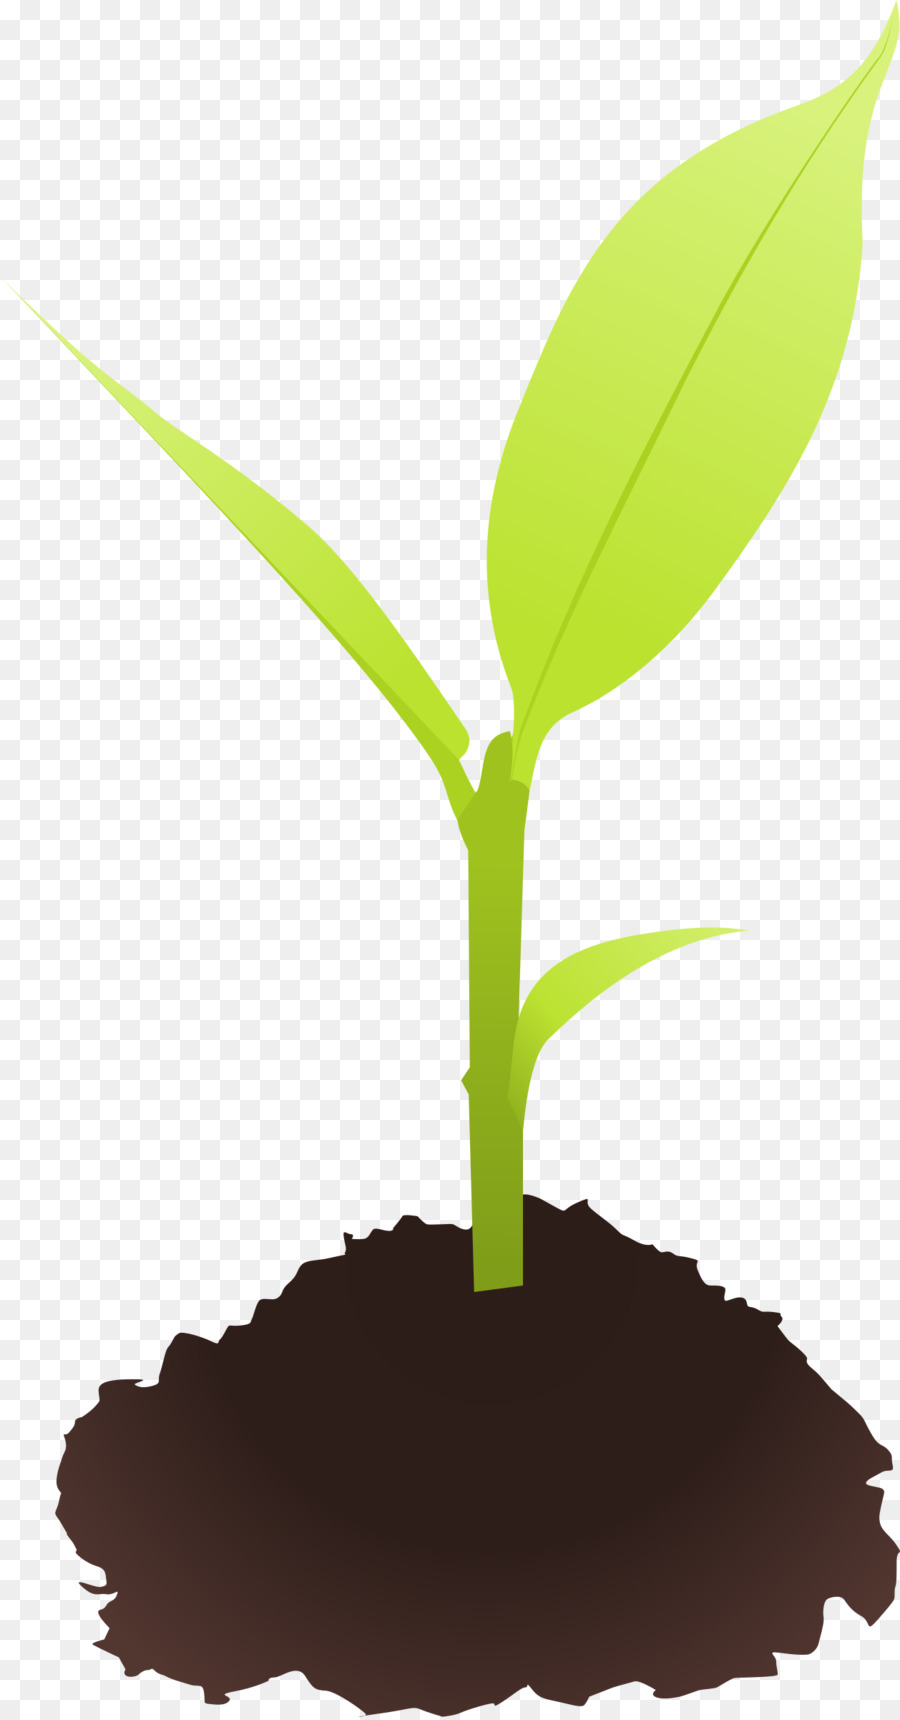 Sprouting clip art plant. Seedling clipart